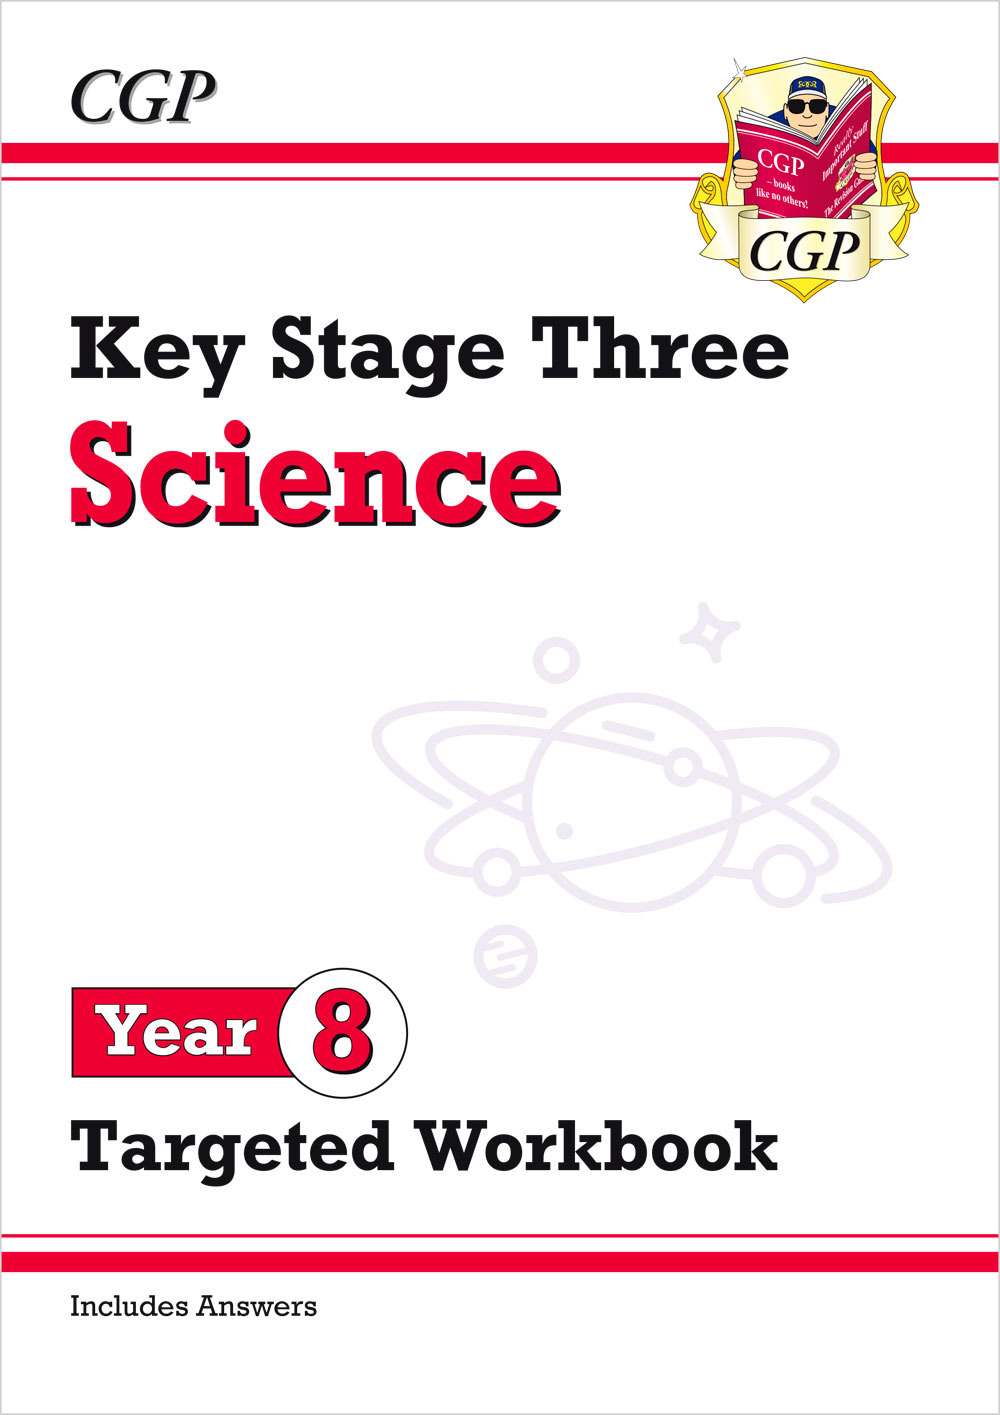 S8W32 - KS3 Science Year 8 Targeted Workbook (with answers)